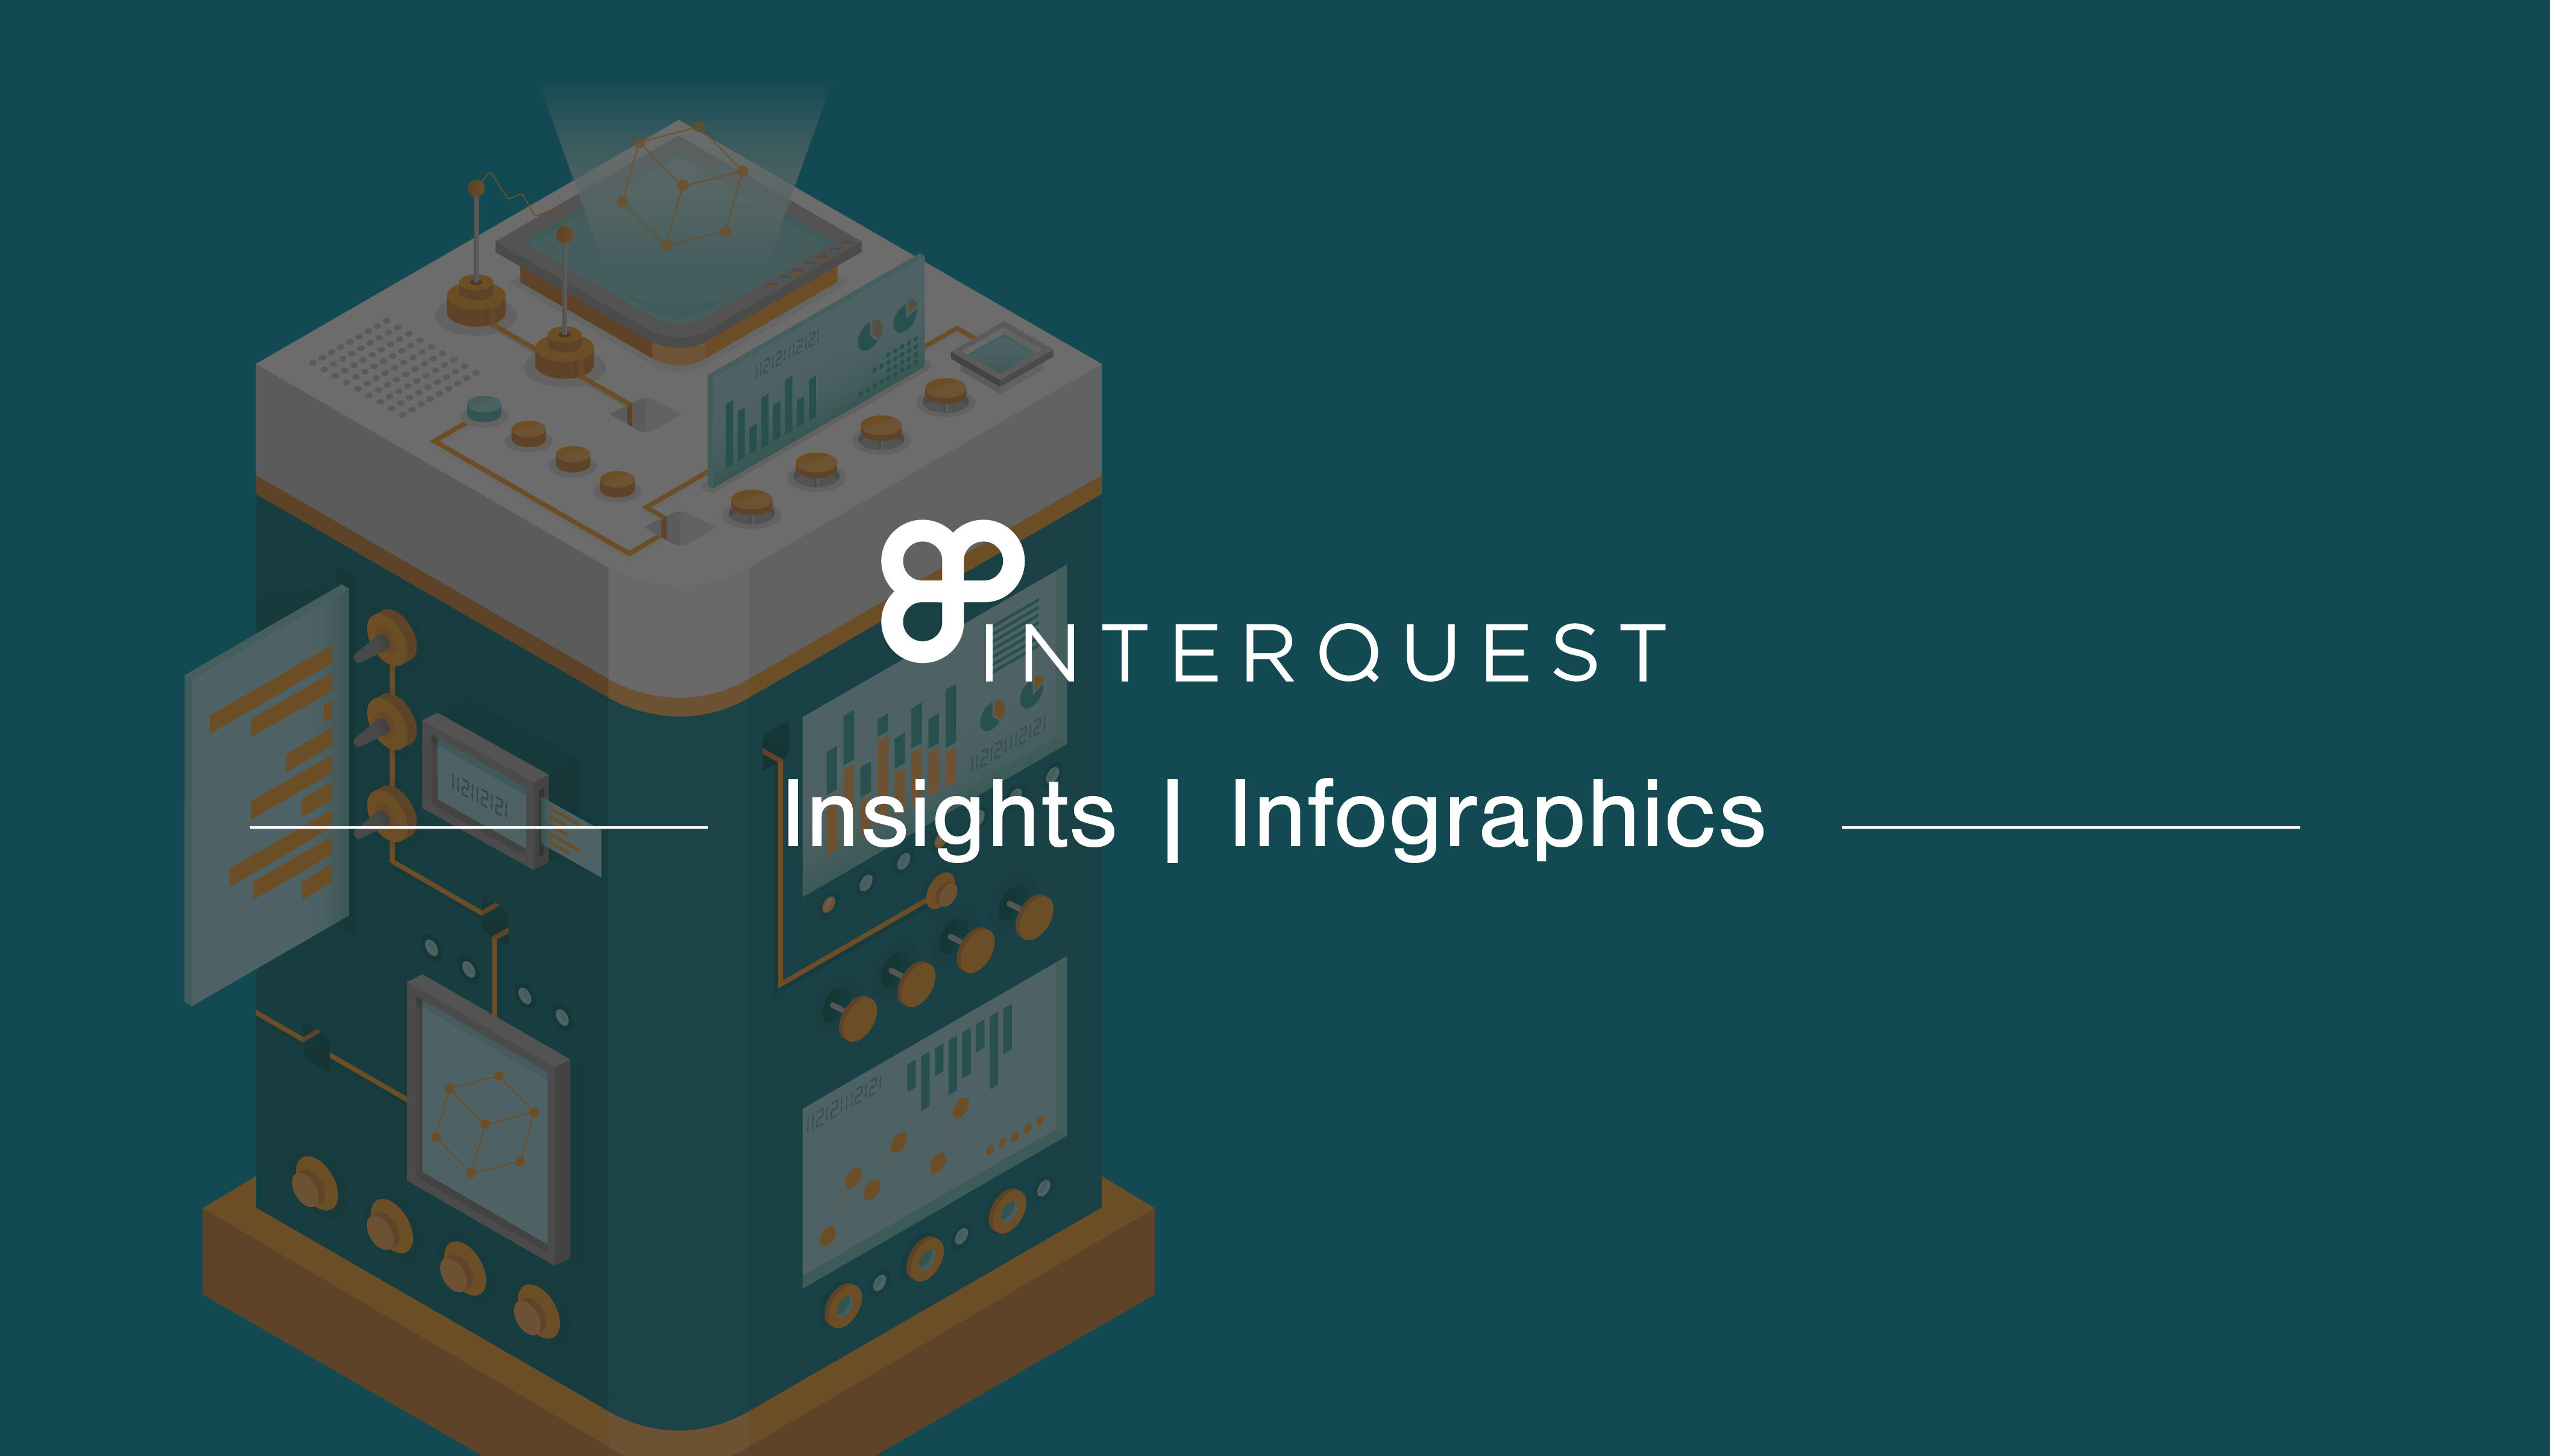 InterQuest Insights banner for an infographic about maturing big data and analytics